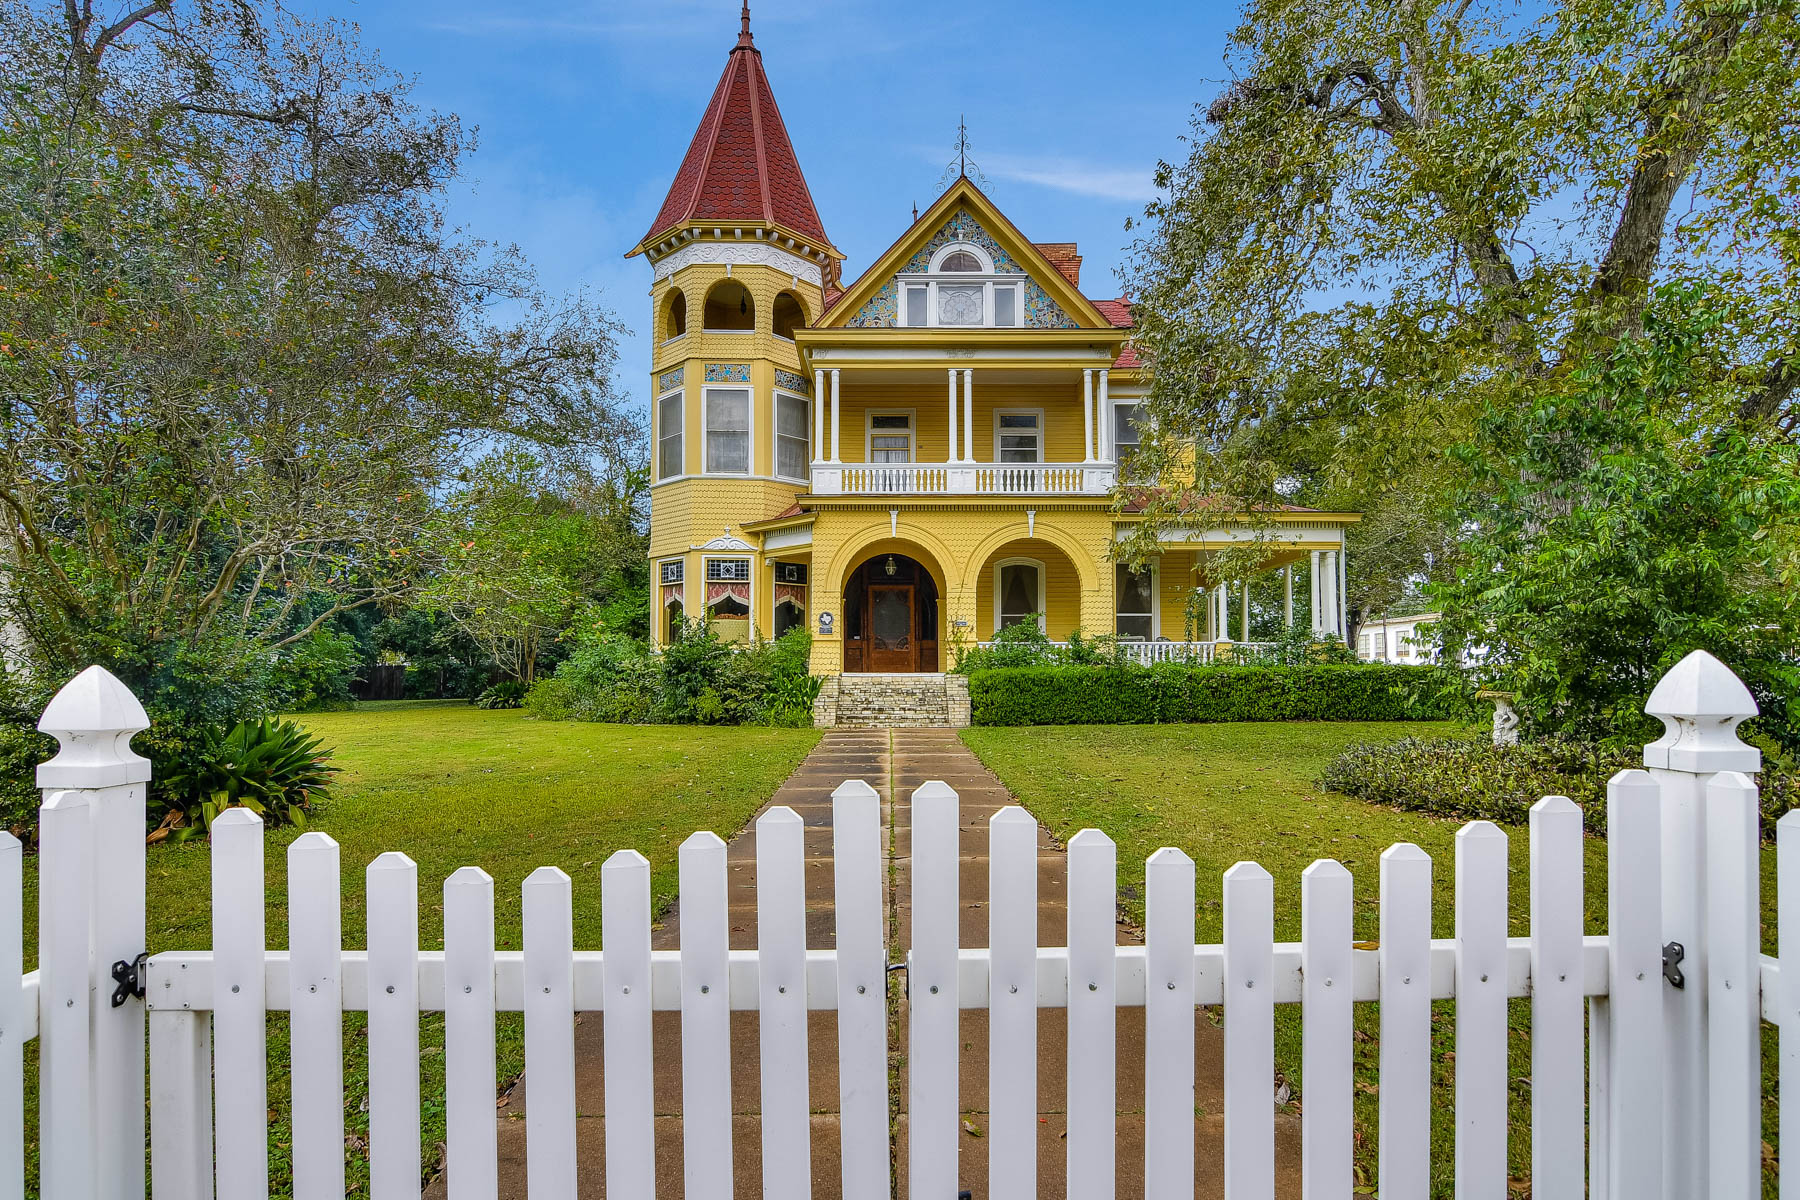 Single Family Home for Sale at Stunning Victorian Home in Gonzales 621 N St. Louis St Gonzales, Texas 78629 United States